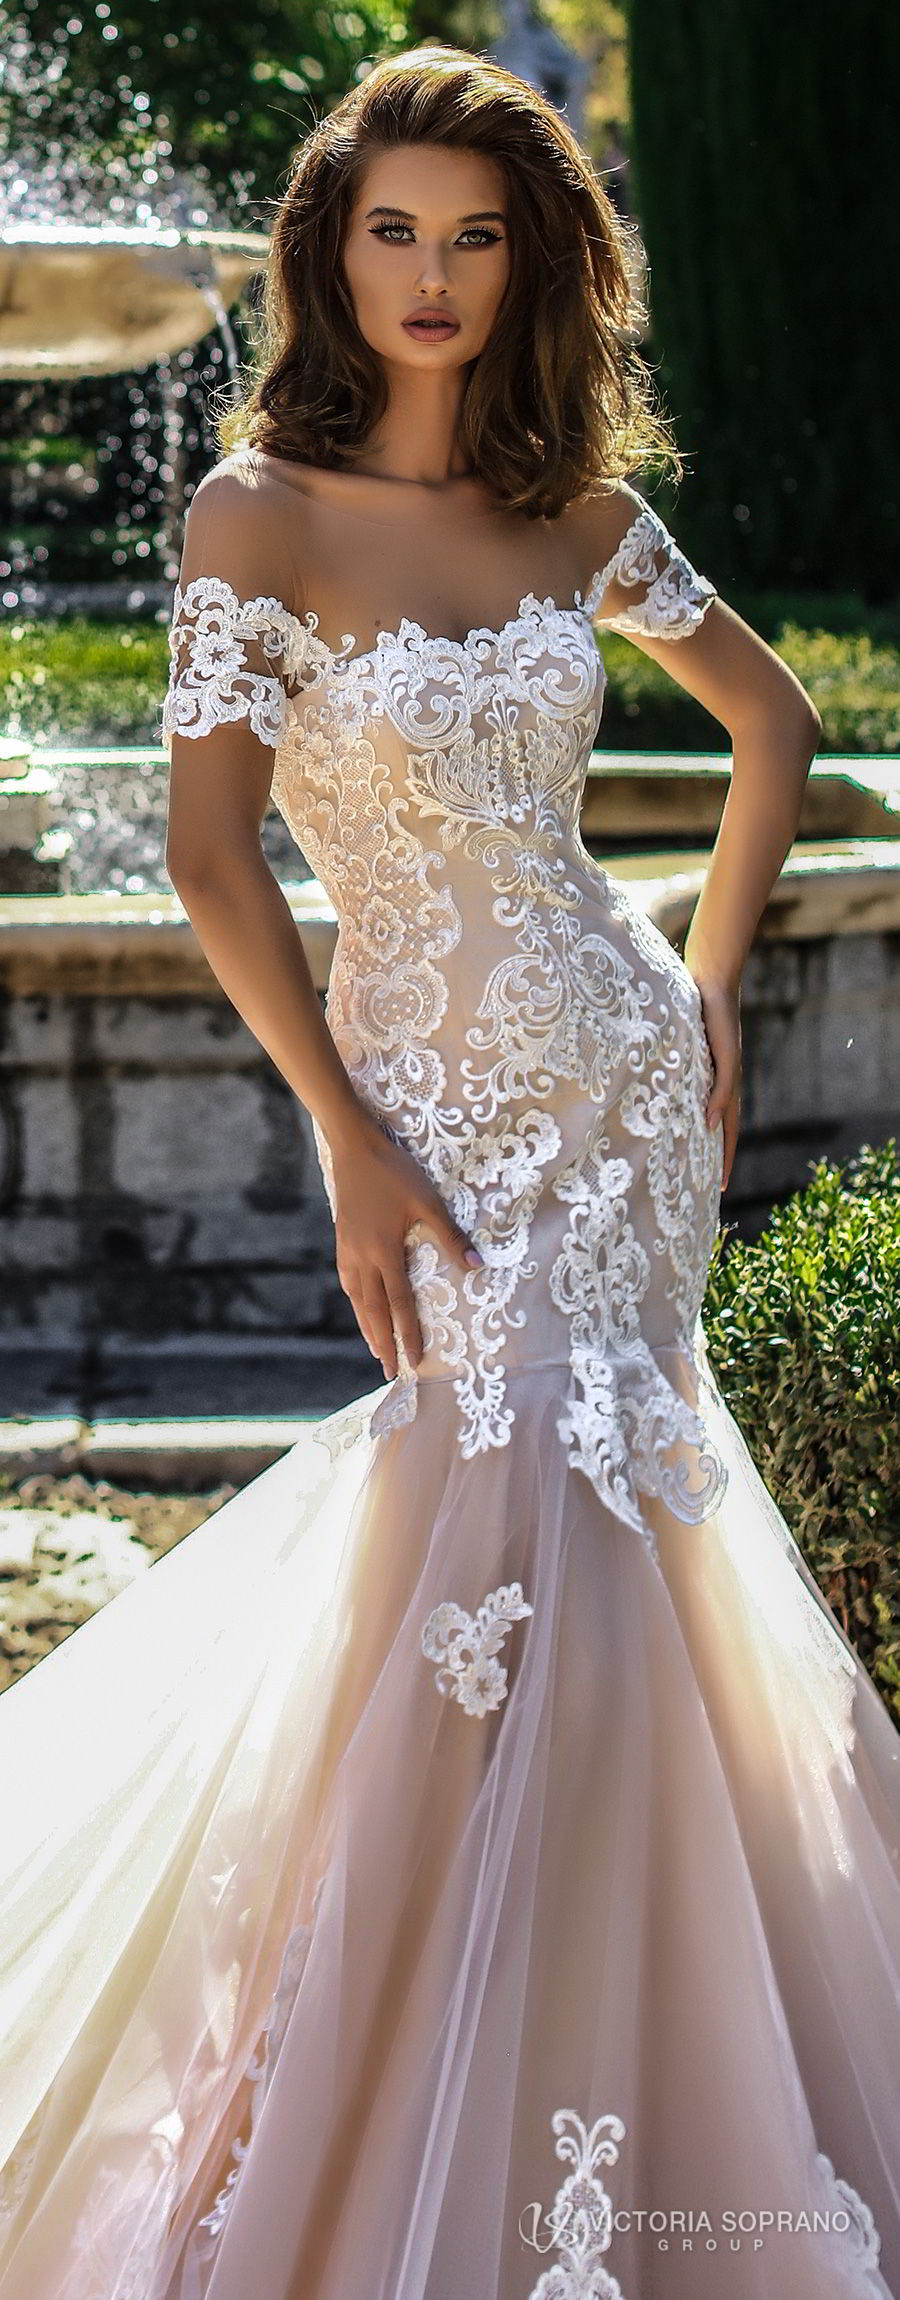 victoria soprano 2018 bridal short sleeves illusion bateau semi sweetheart neckline heavily embellished bodice elegant blush color mermaid wedding dress open back chapel train (brenda) lv